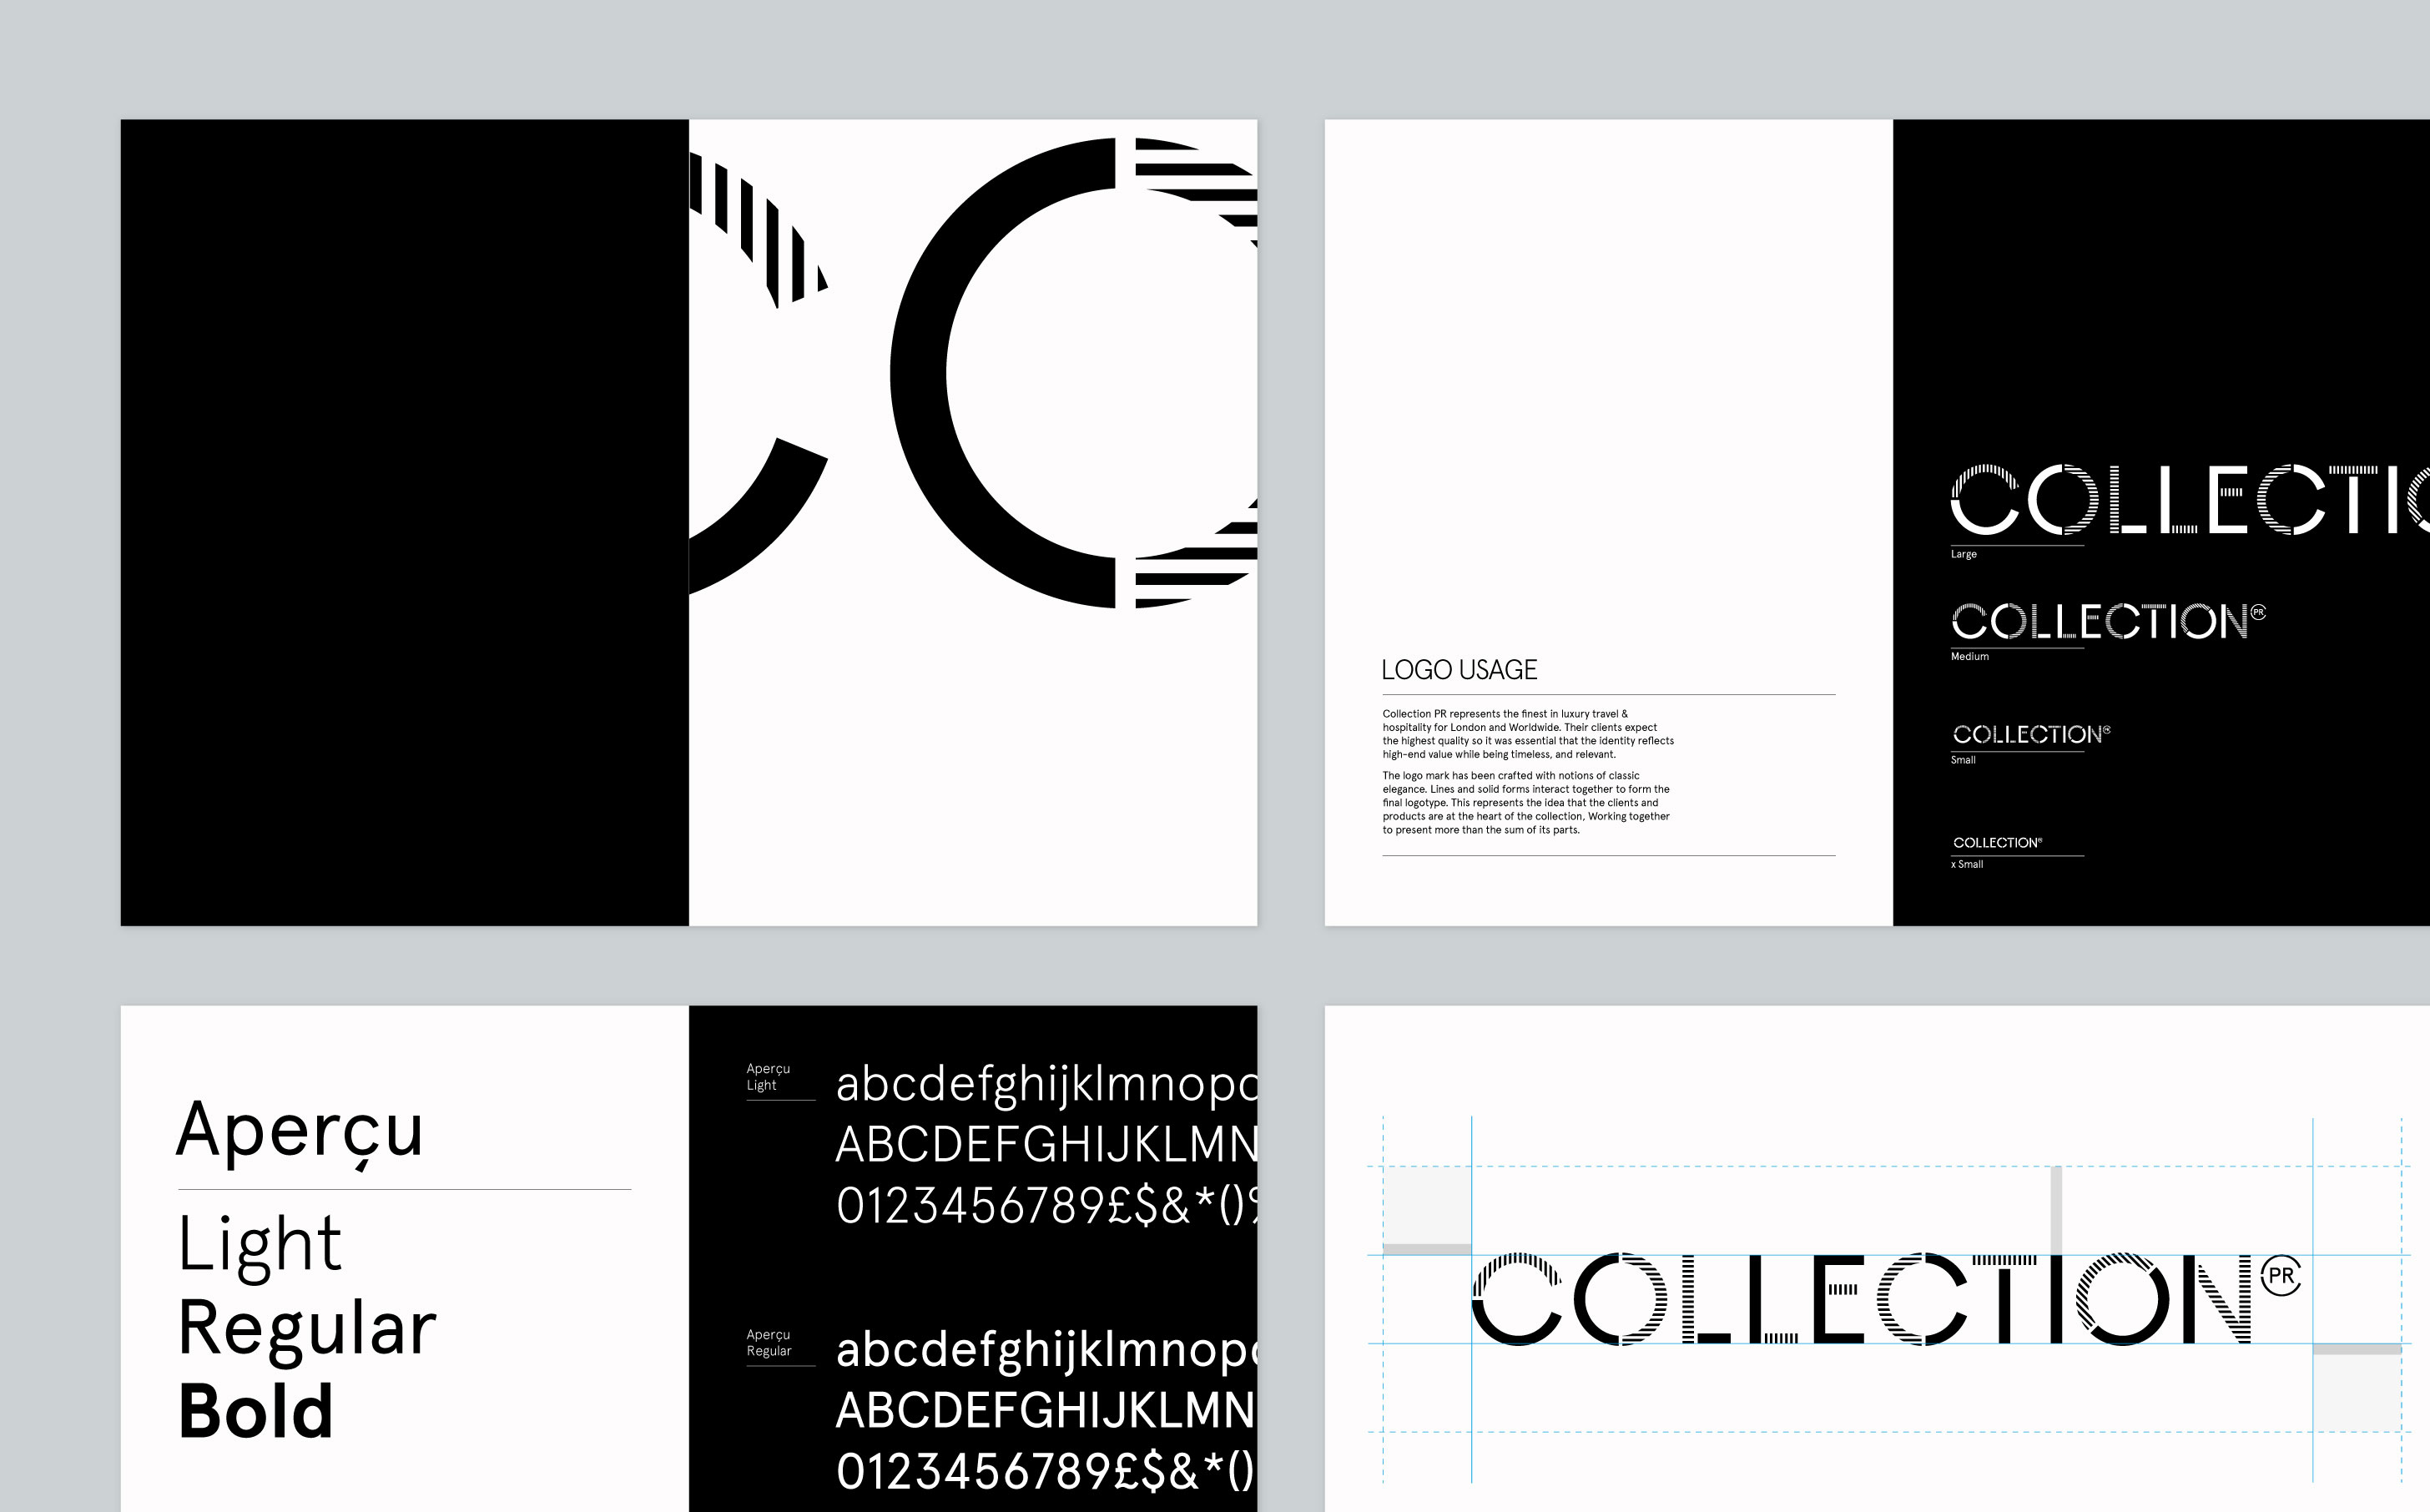 brand-guidelines-collection-pr